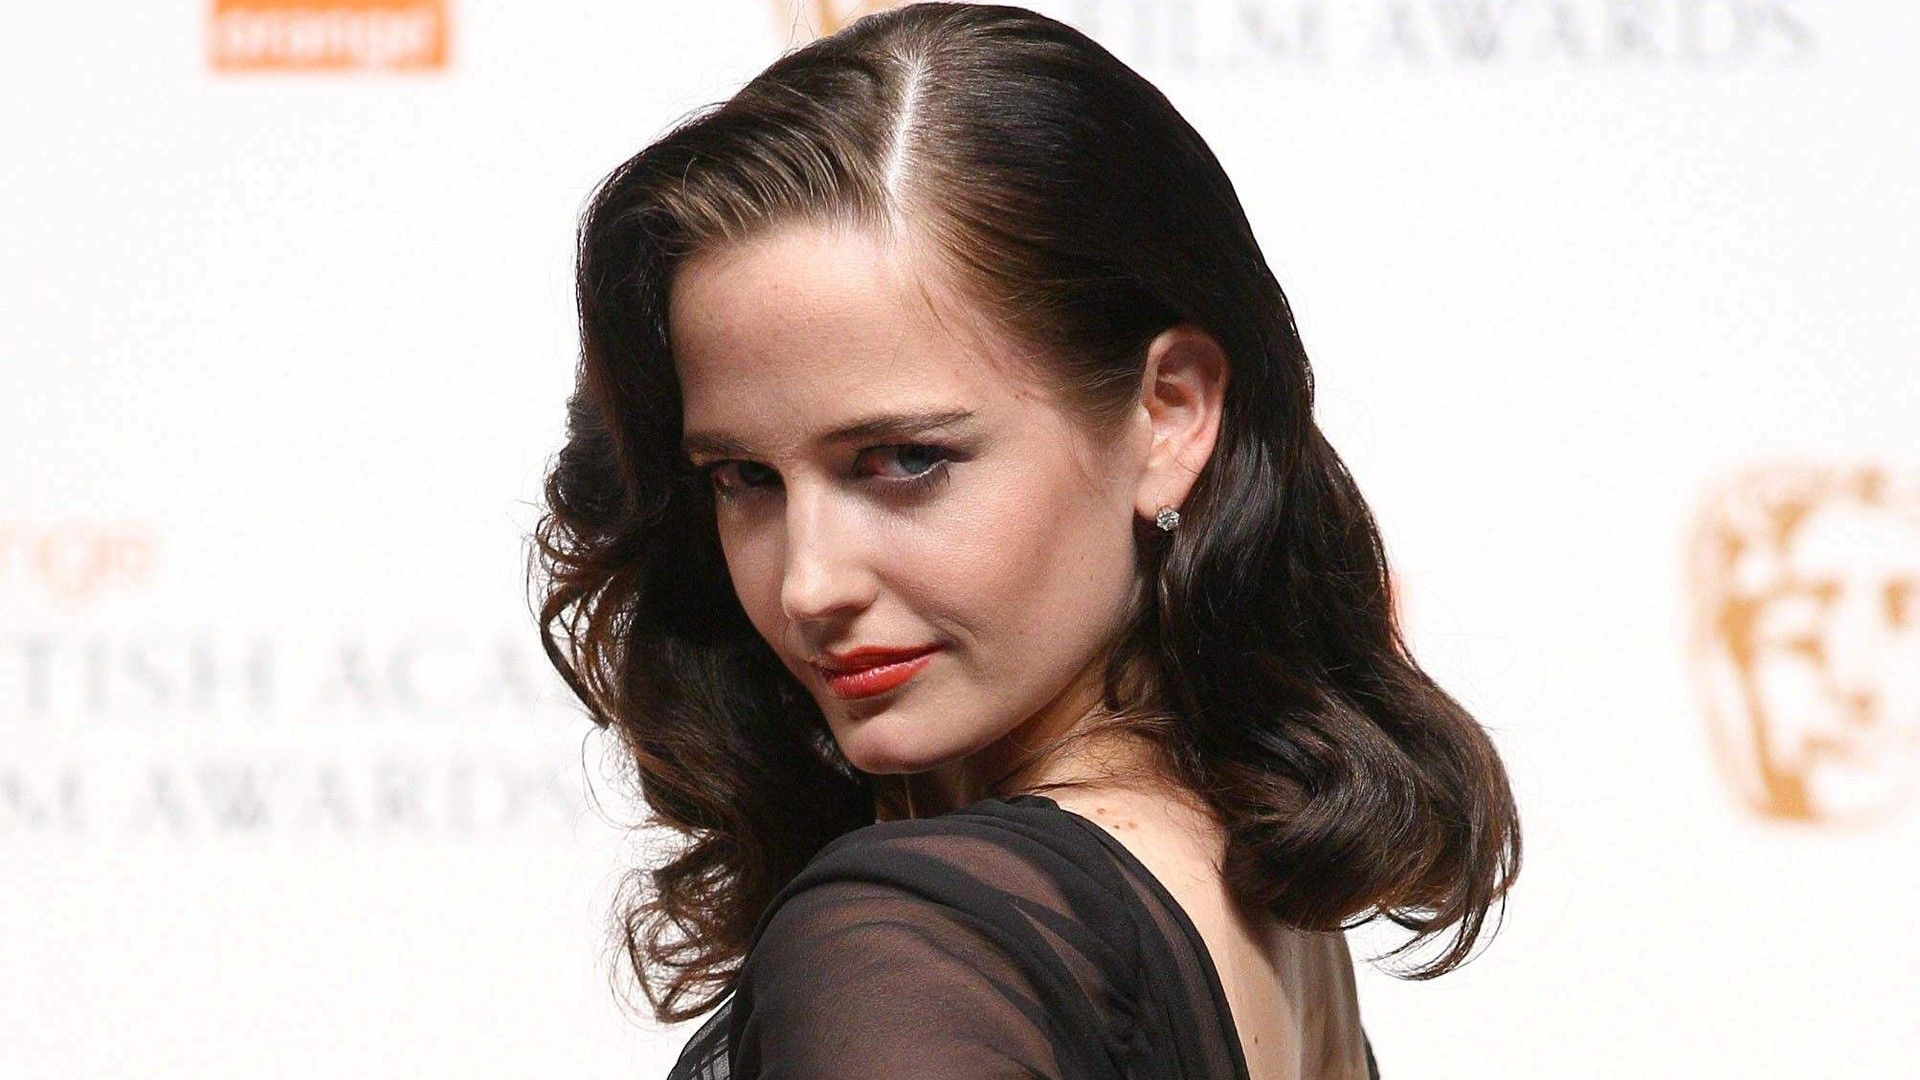 Hd wallpaper hollywood - Famous French Hollywood Actress Eva Green In Black Hd Wallpaper